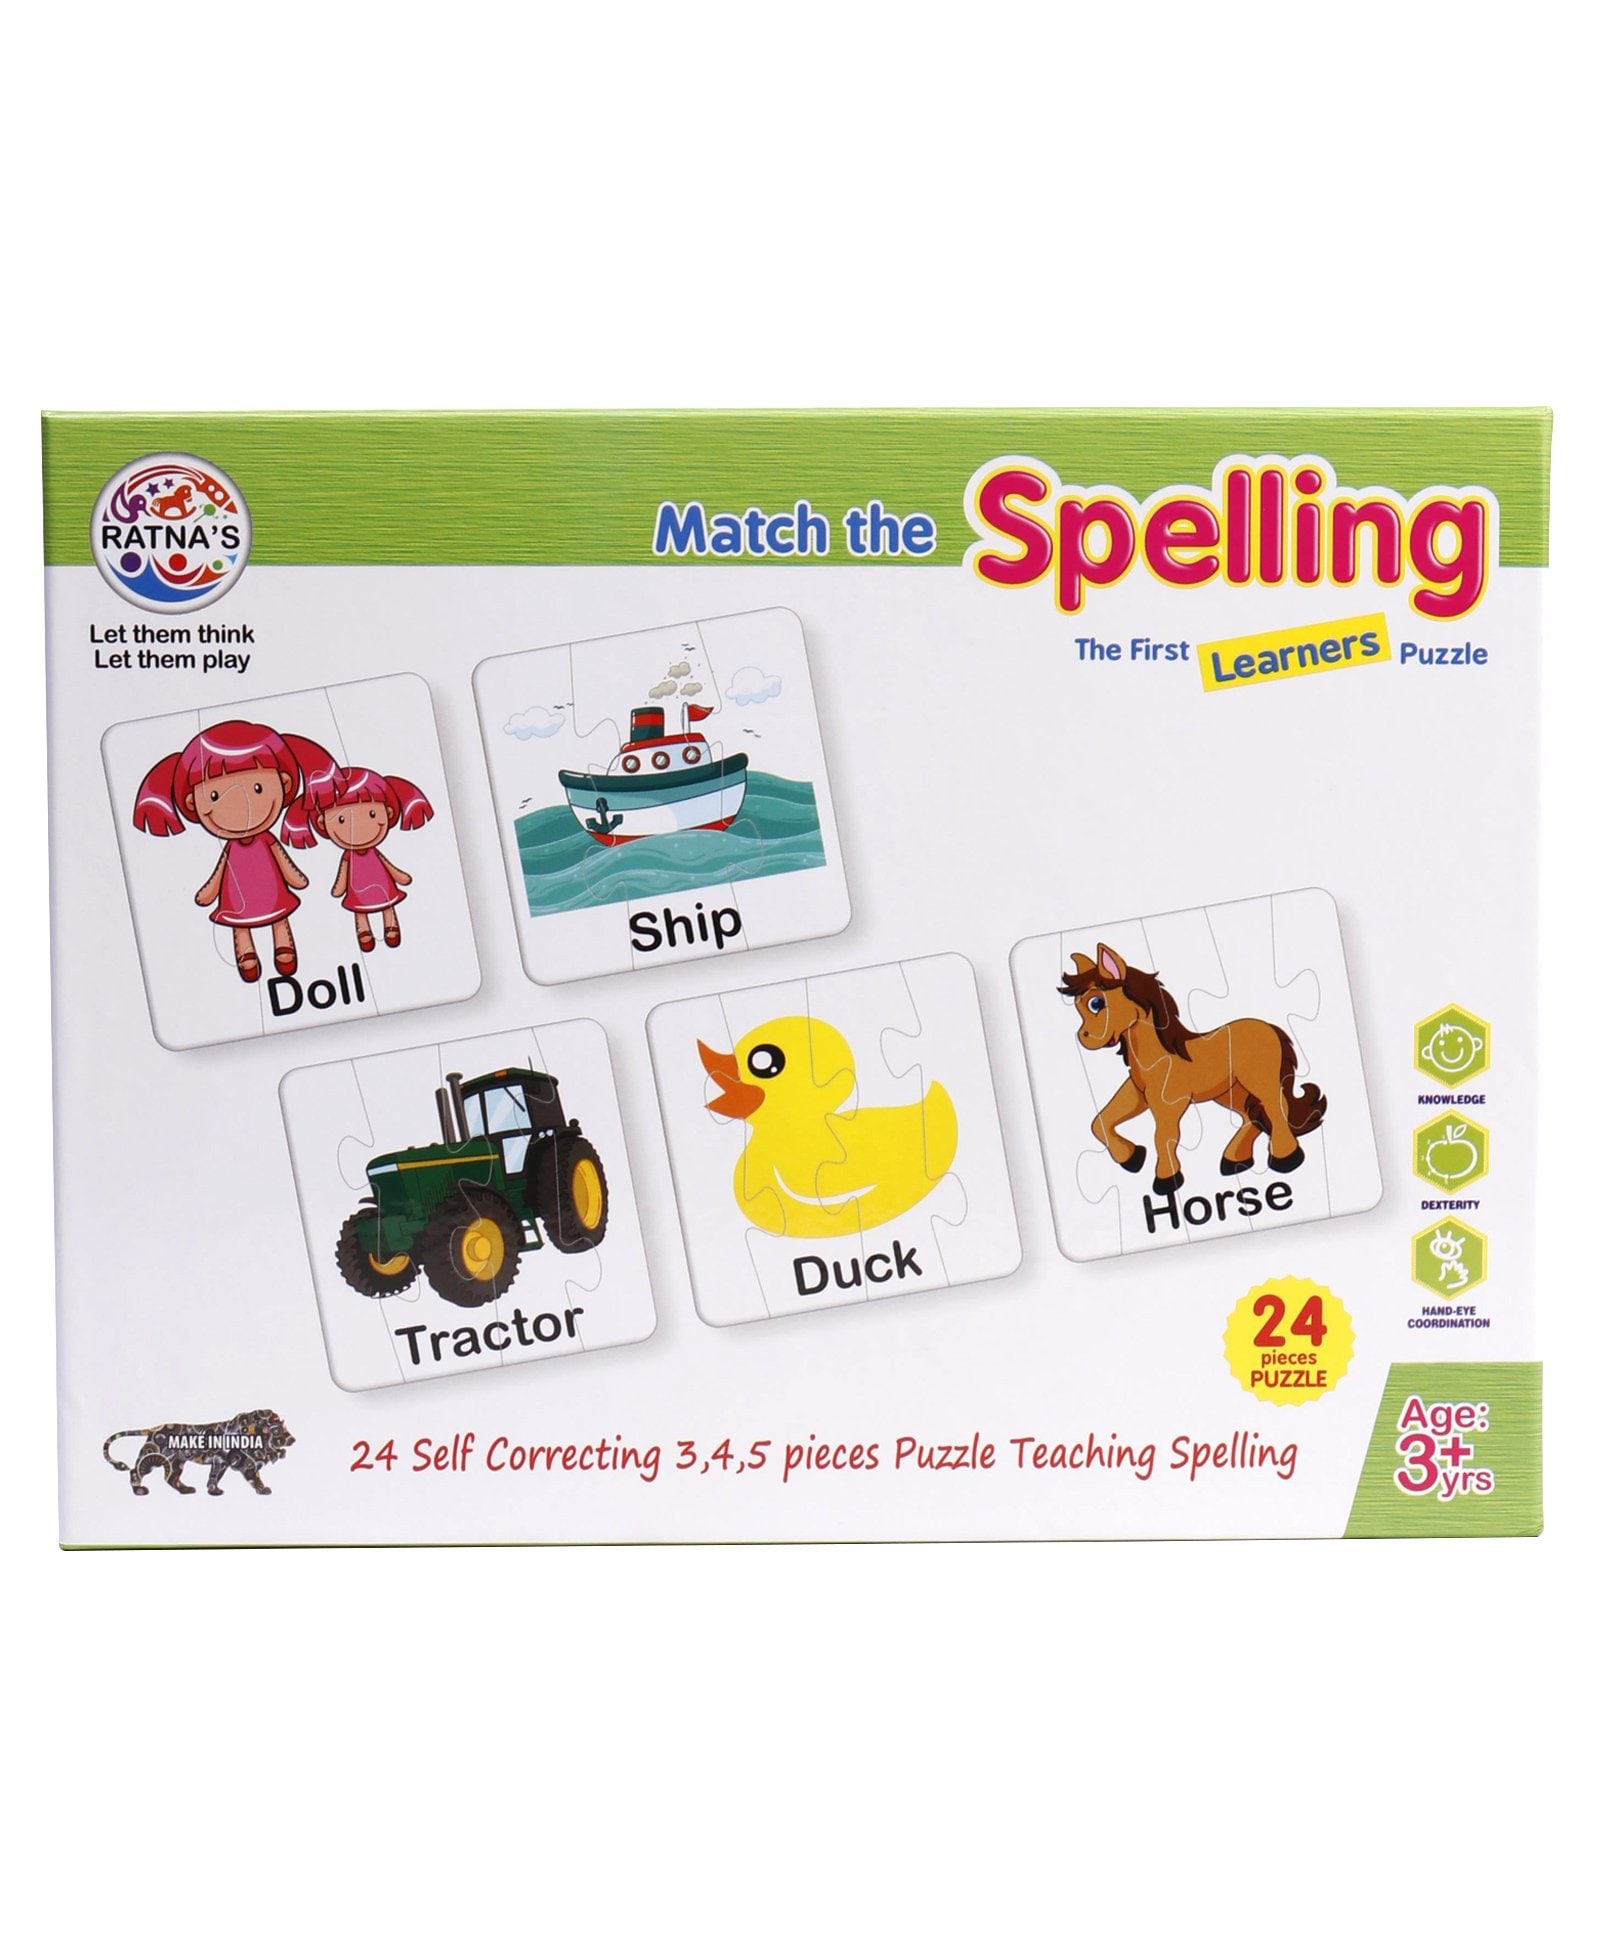 Match The Spelling Jigsaw Puzzle